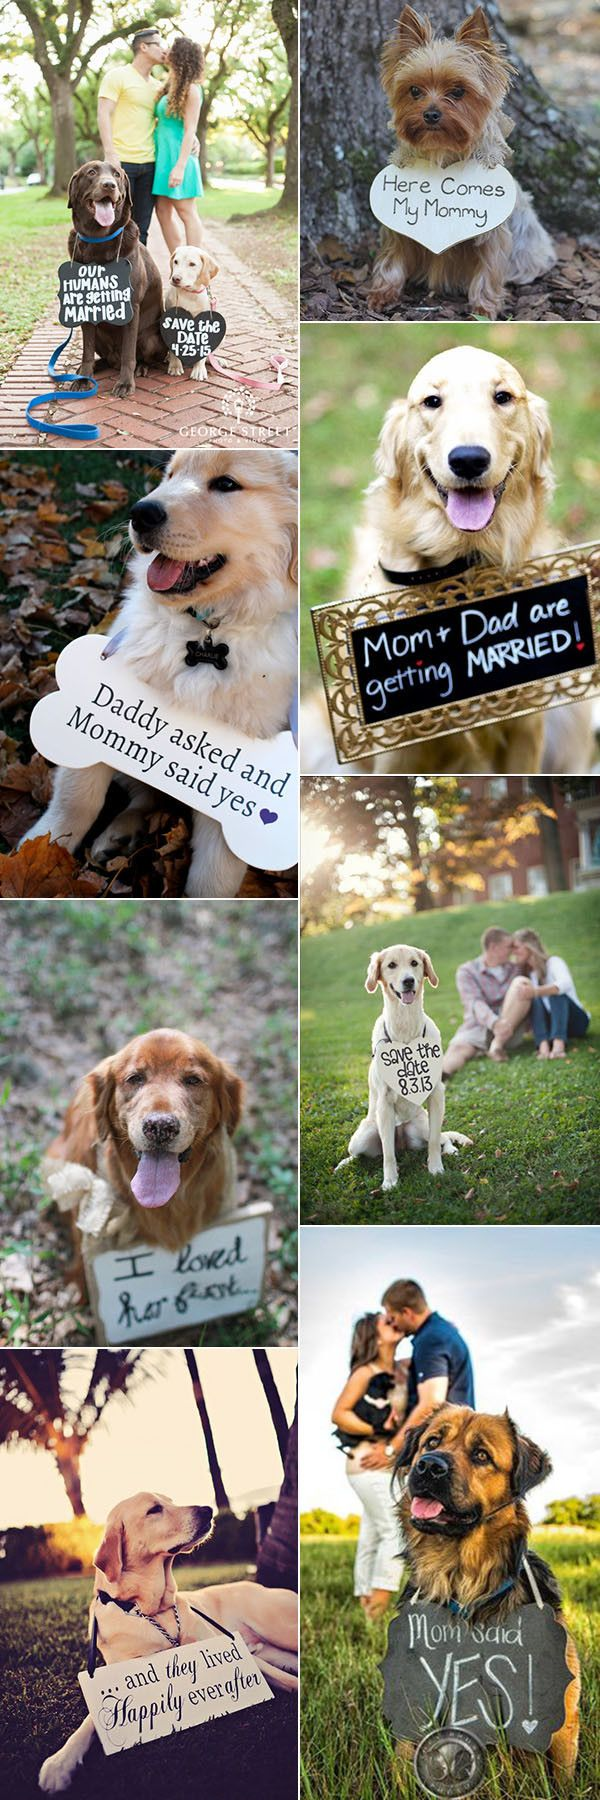 precious-wedding-photo-ideas-with-dogs.jpg 600×1,800 pixeles